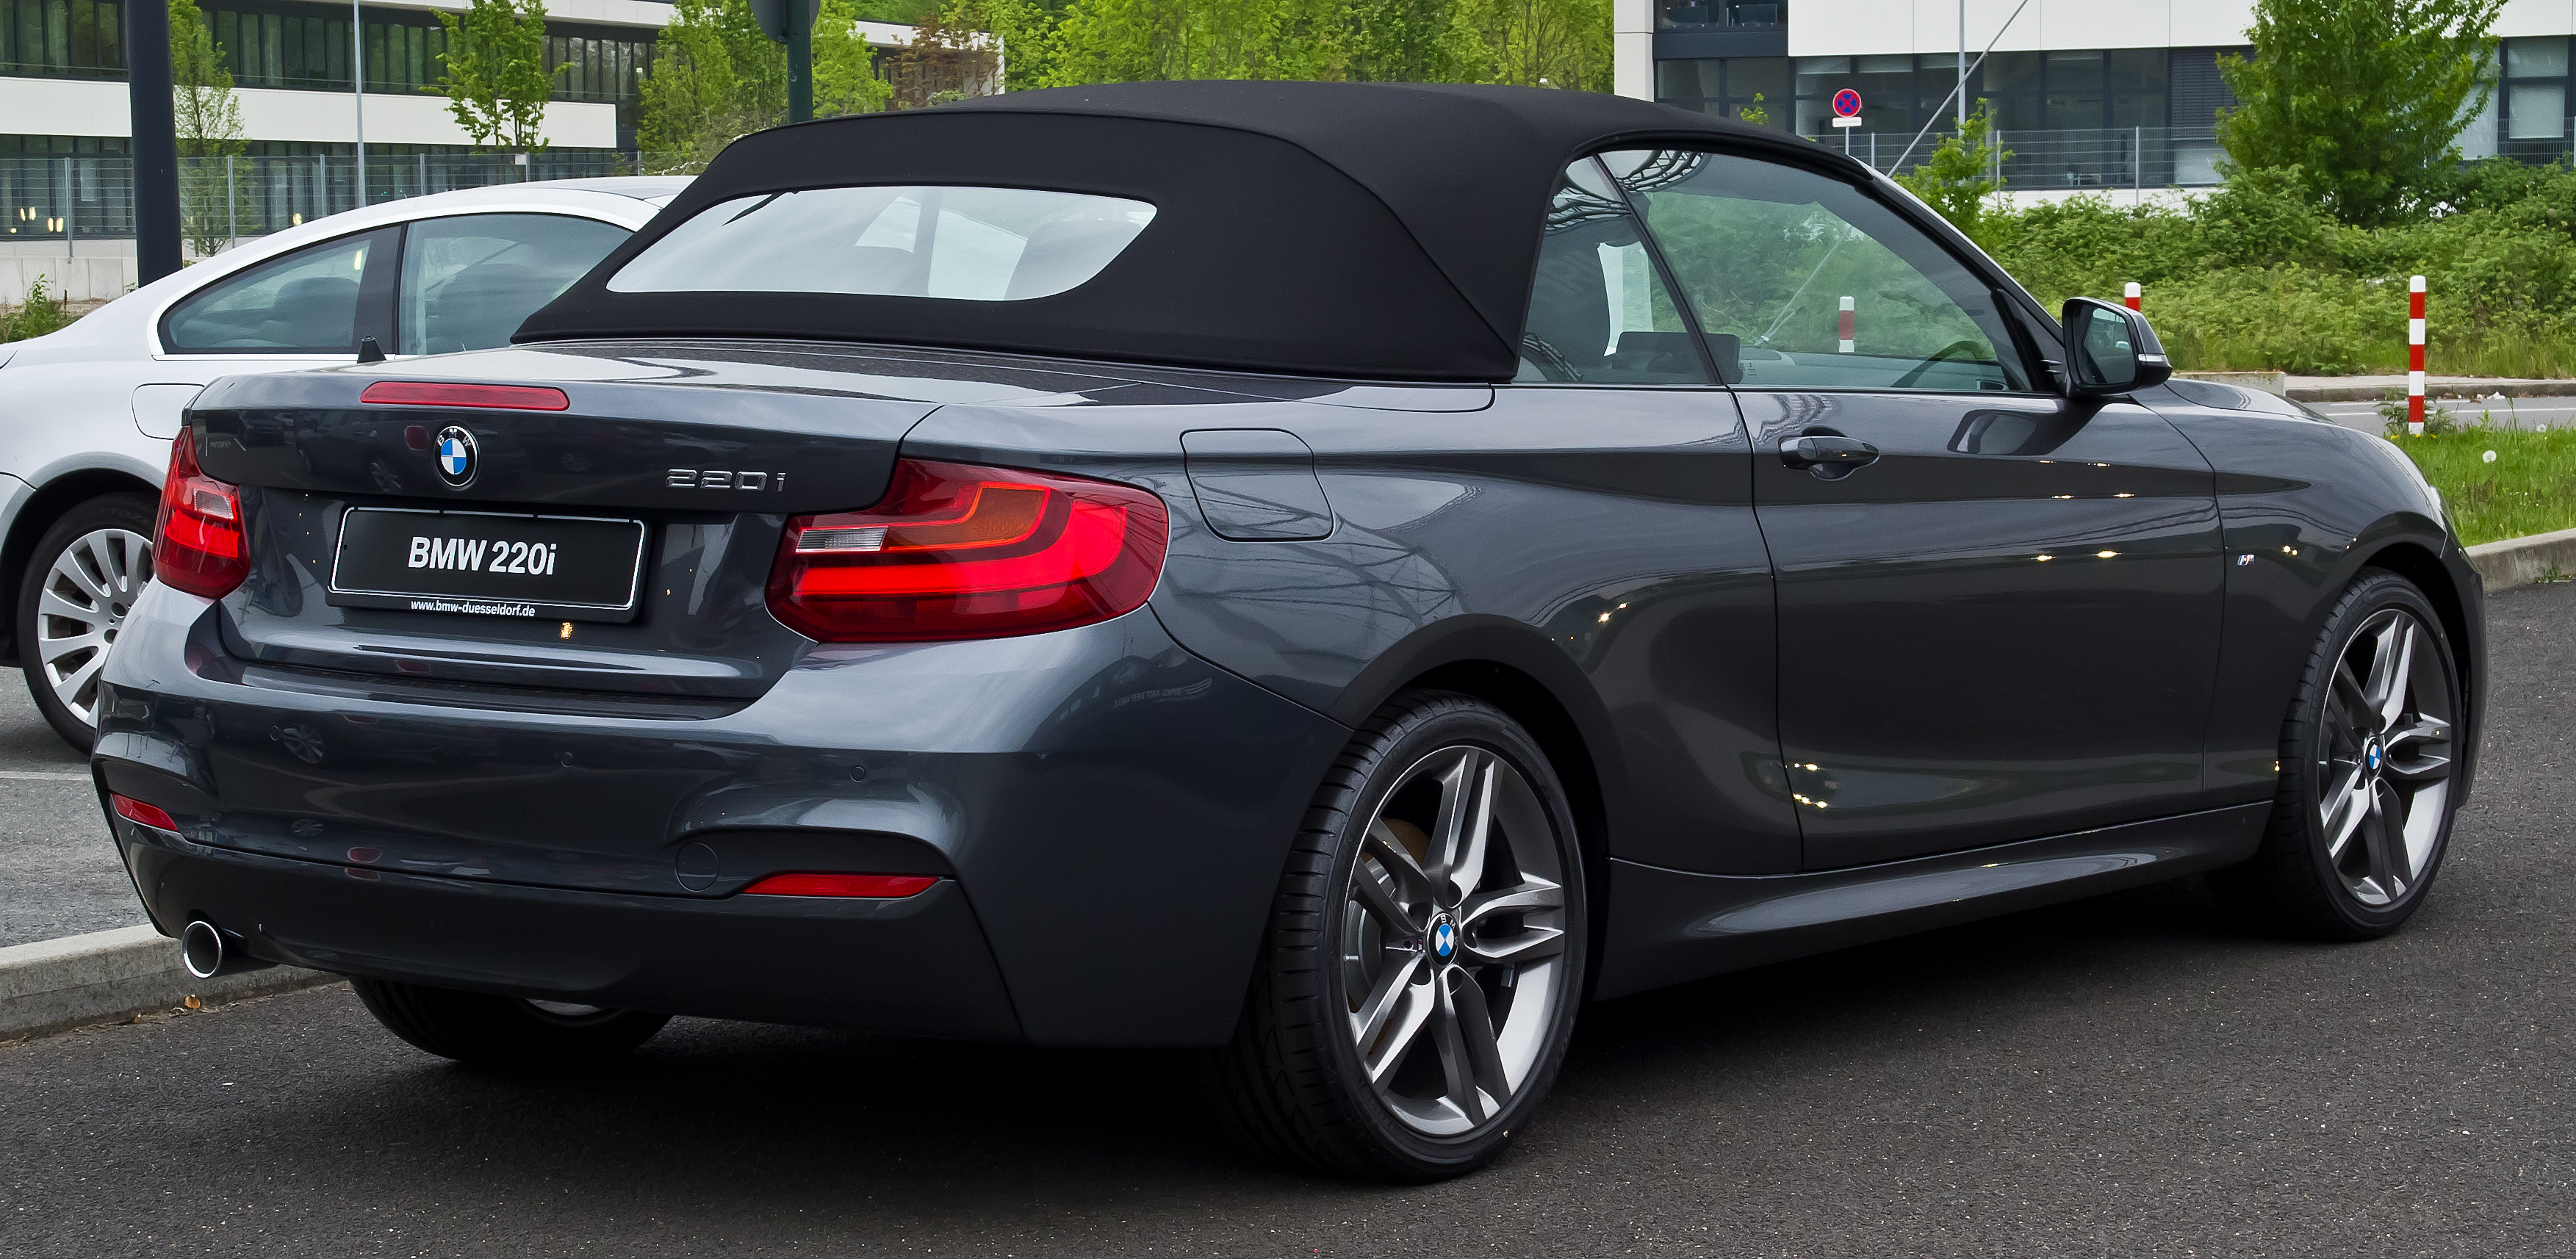 file bmw 220i cabriolet m sport f23 heckansicht 2 mai 2015 d wikimedia commons. Black Bedroom Furniture Sets. Home Design Ideas